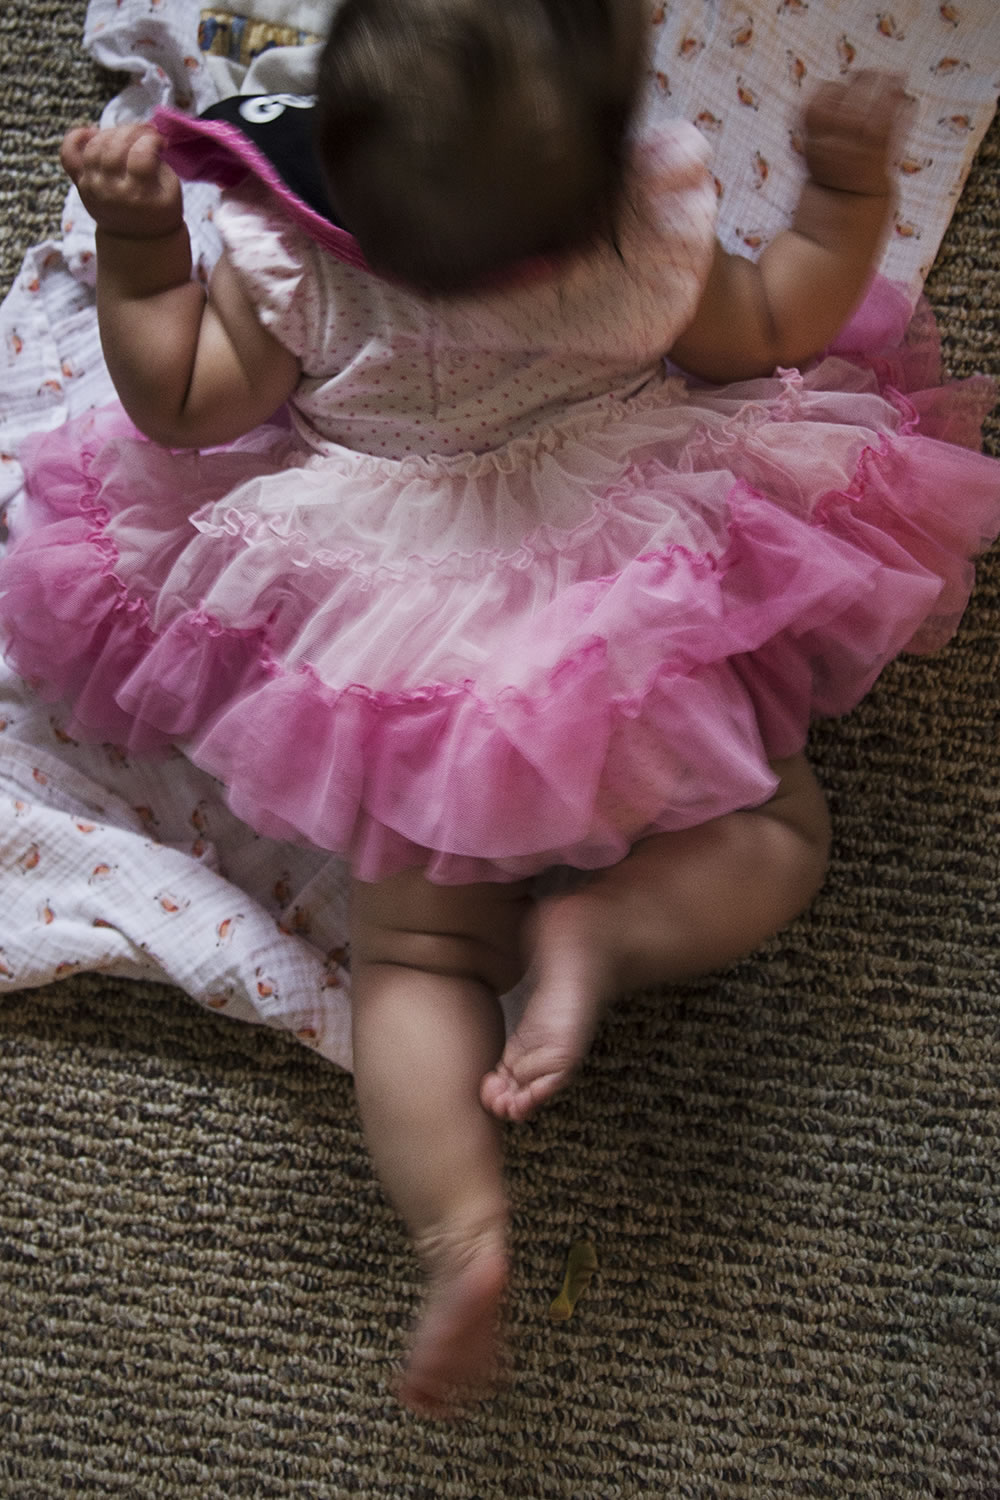 Baby in her first party dress, giving belly dancing a new definition.